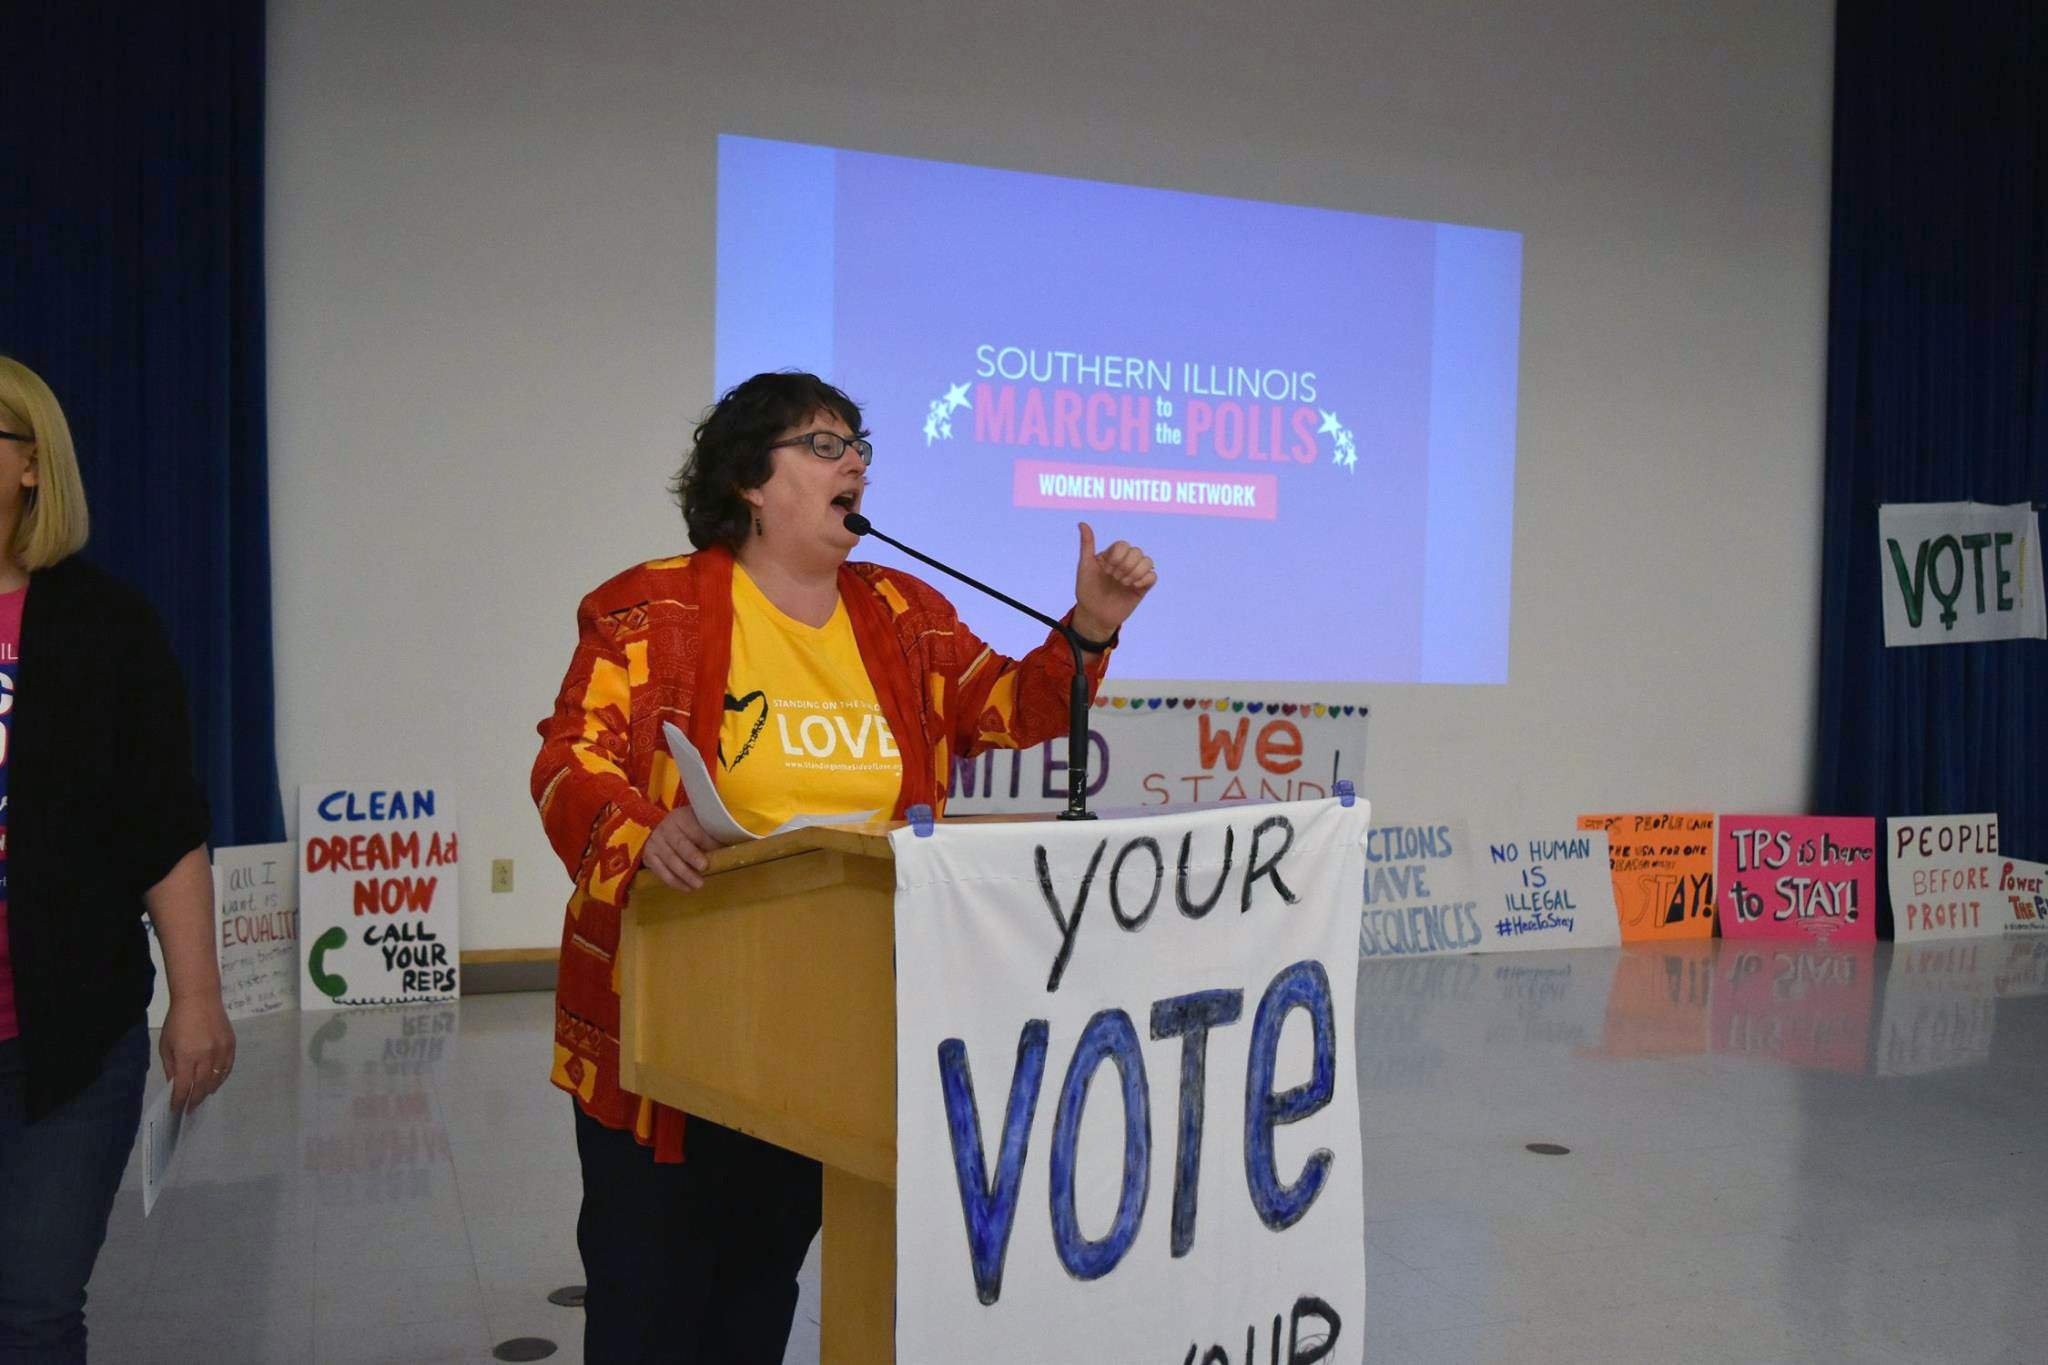 The Rev. Sarah Richards, of Carbondale Unitarian Fellowship, speaks to the crowd at the Carbondale Civic Center, the starting point for the Southern Illinois Women's March.